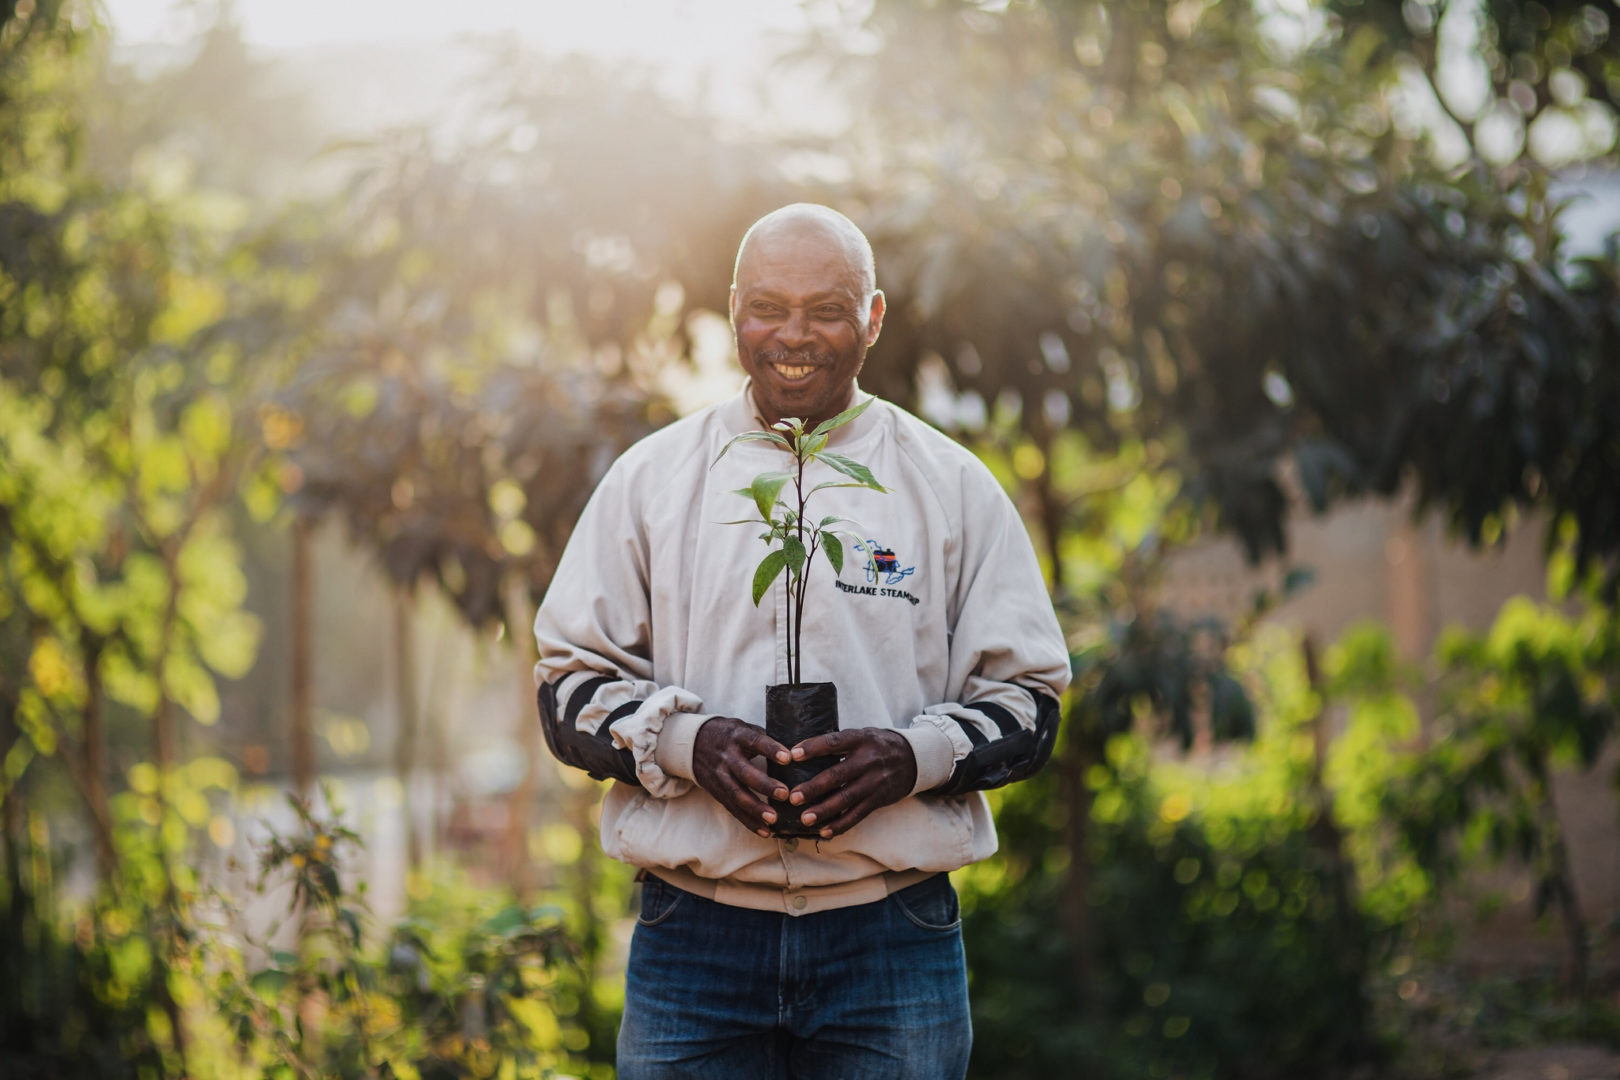 Wilner, a trained Haitian agronomist is a member of Plant With Purpose Haiti's staff